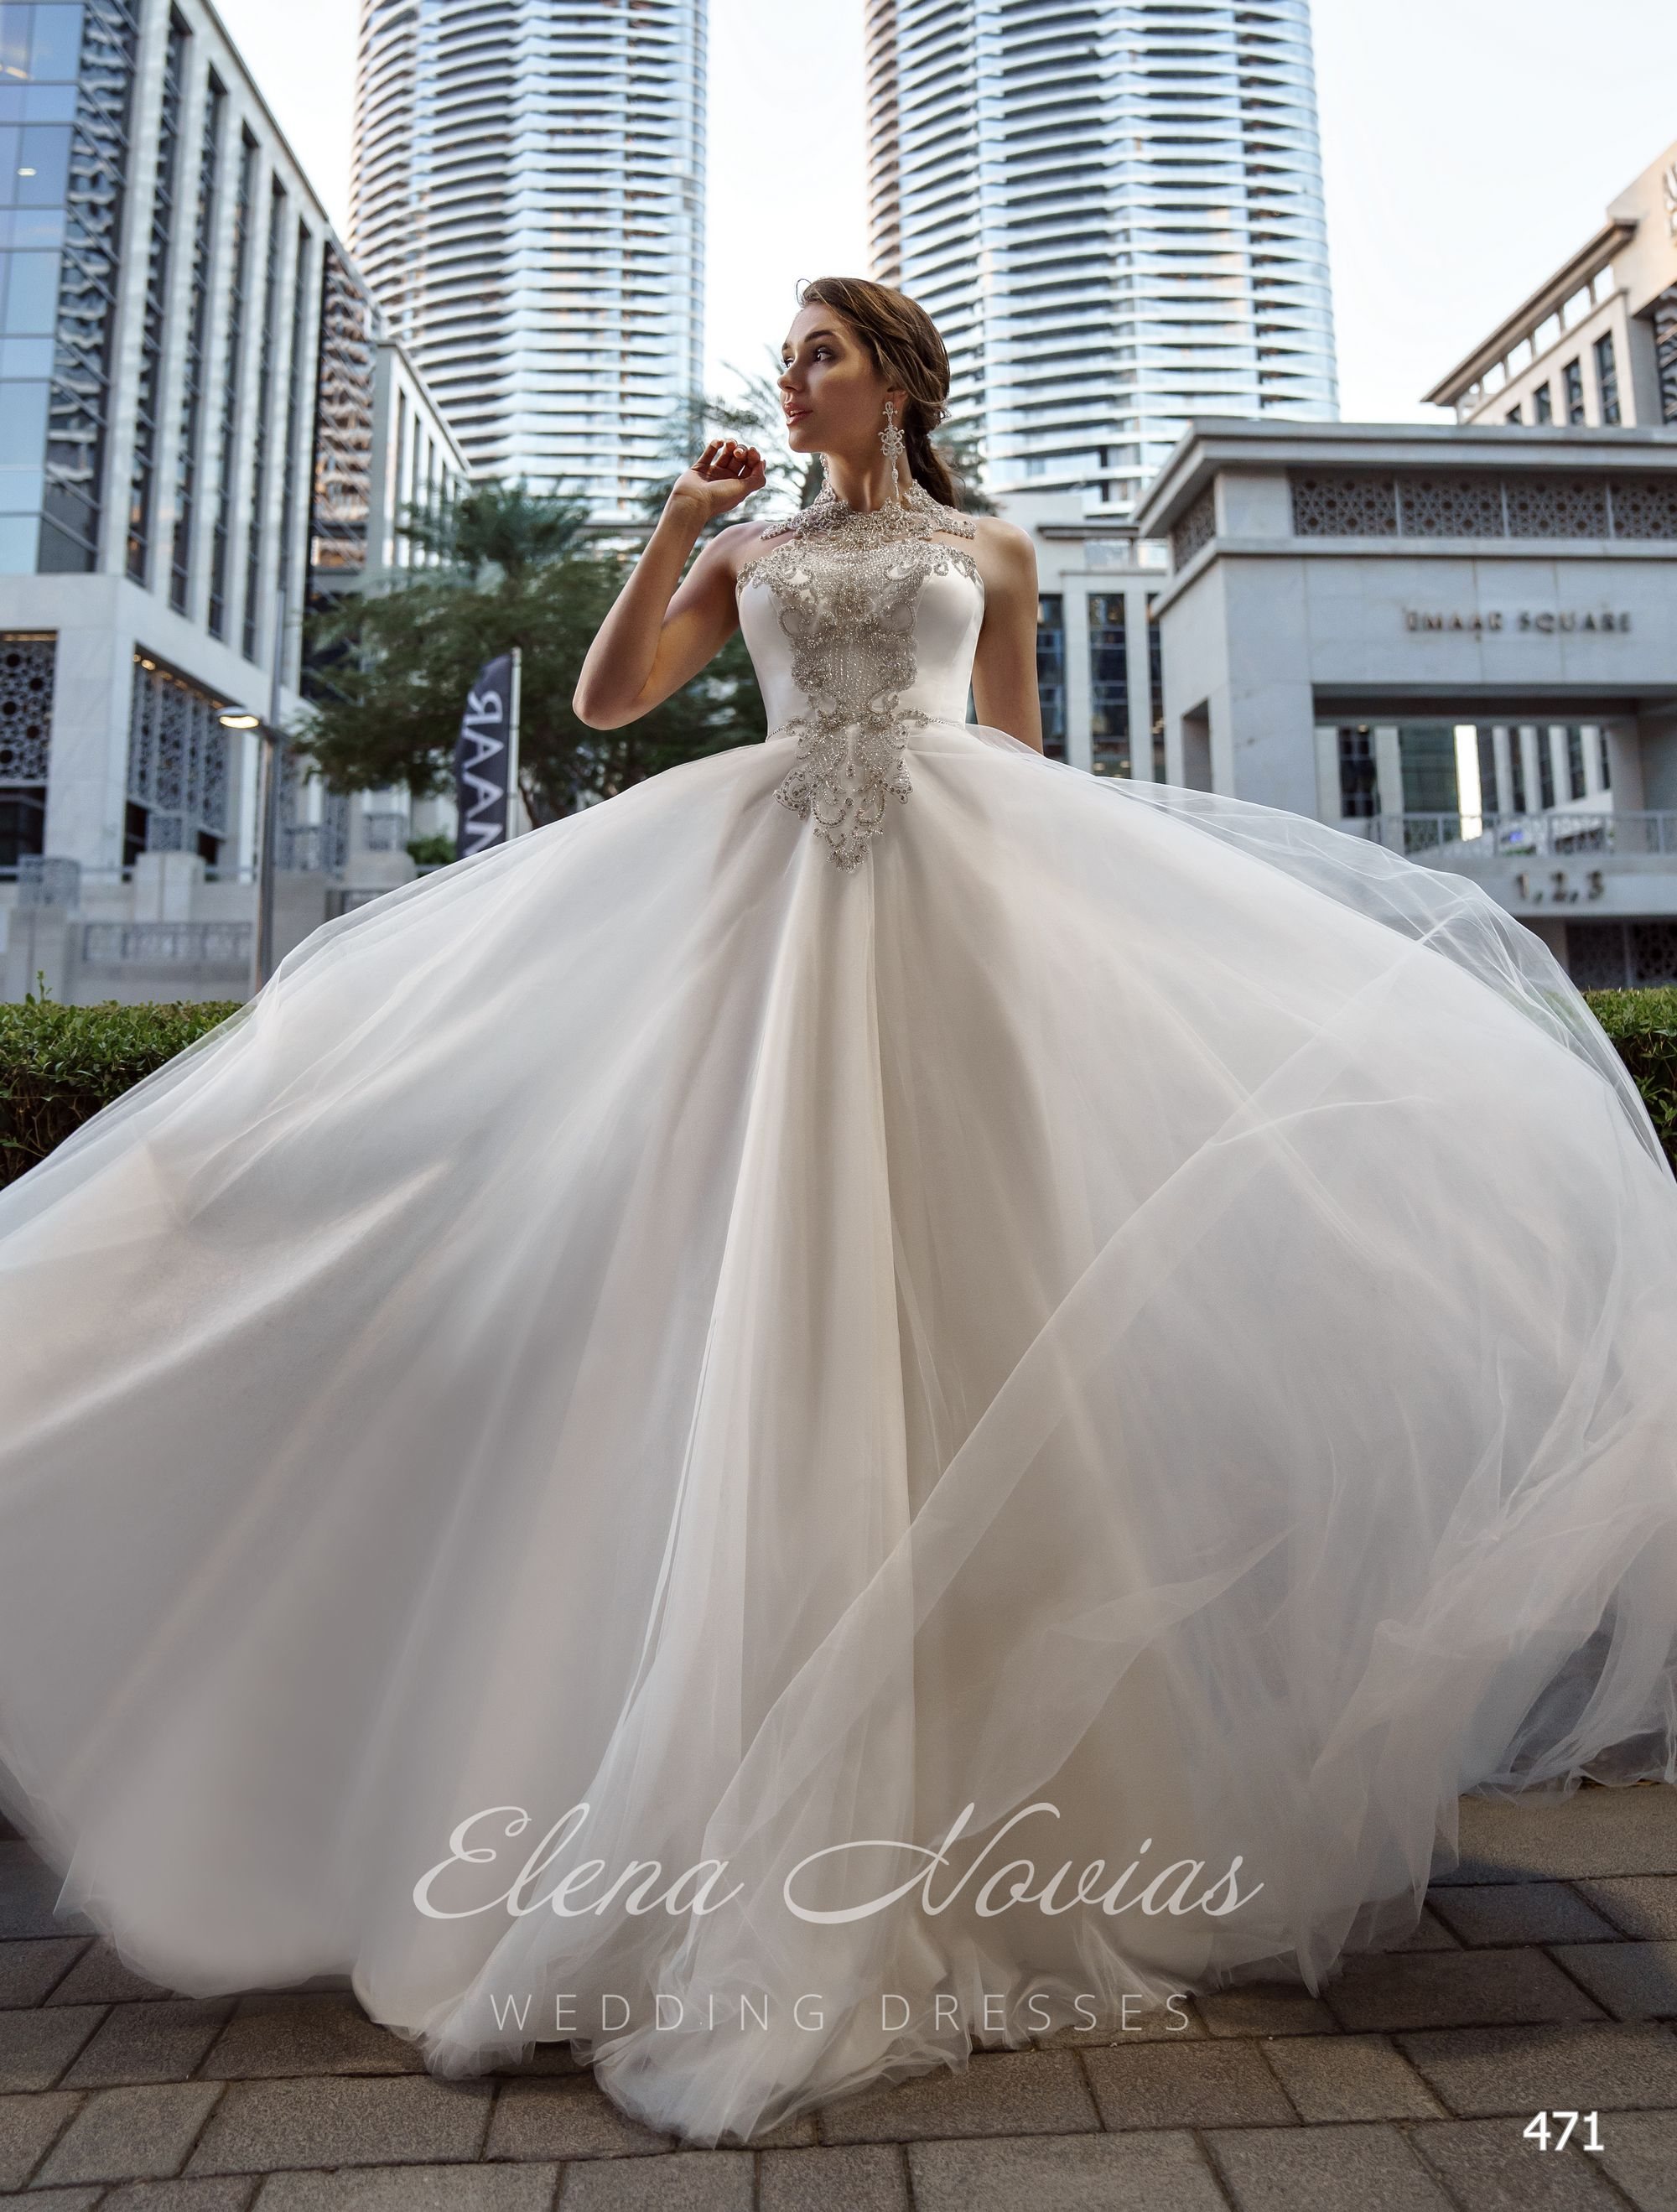 Wedding dresses 471